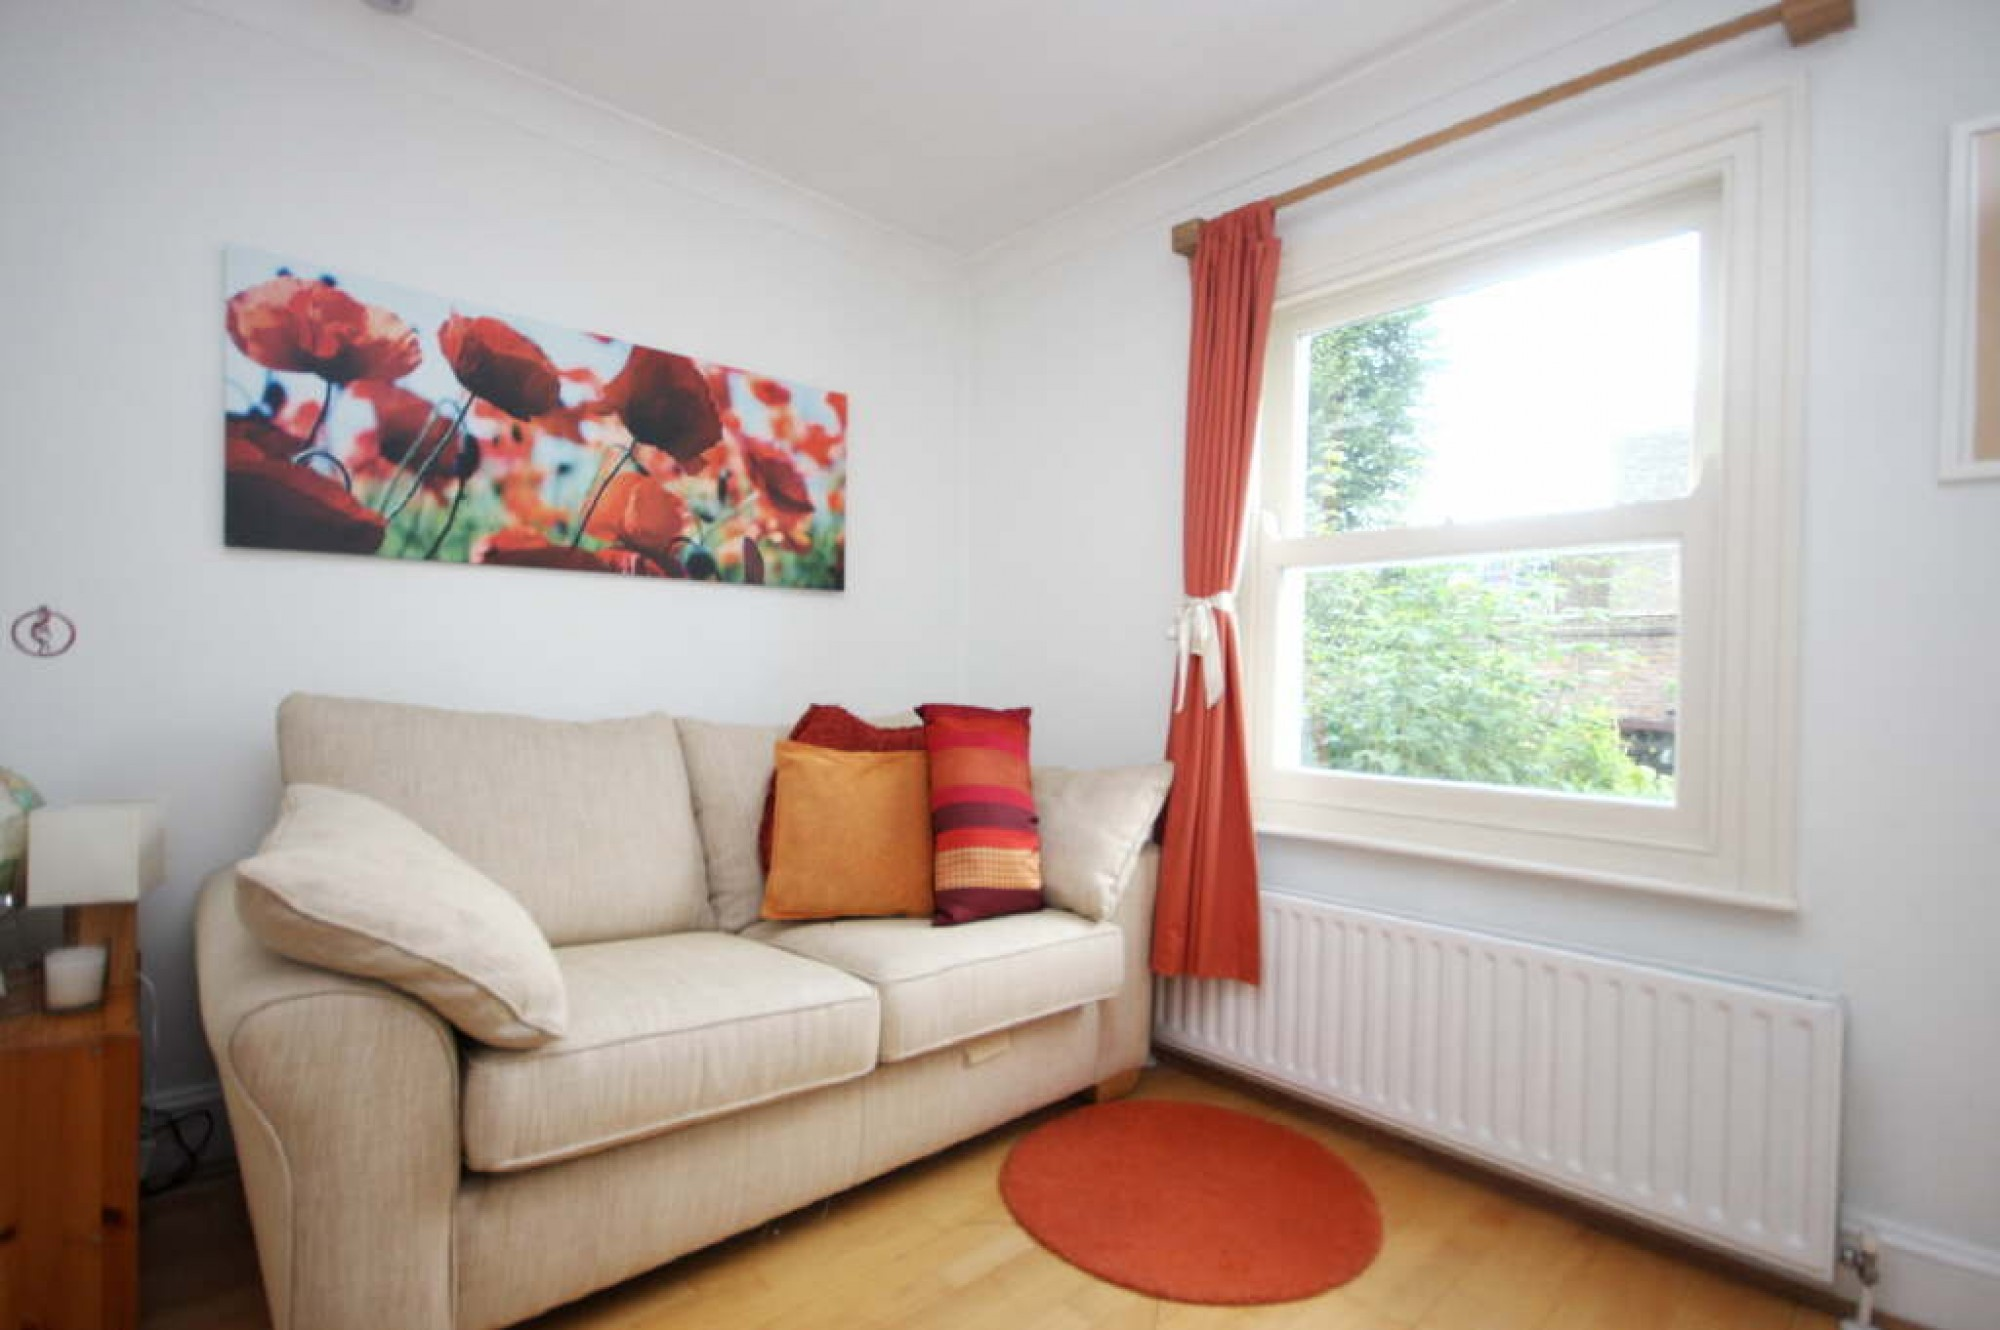 Images for Highbury Grange, Highbury, London EAID:931013c273837aec744cf2e7889cb460 BID:3